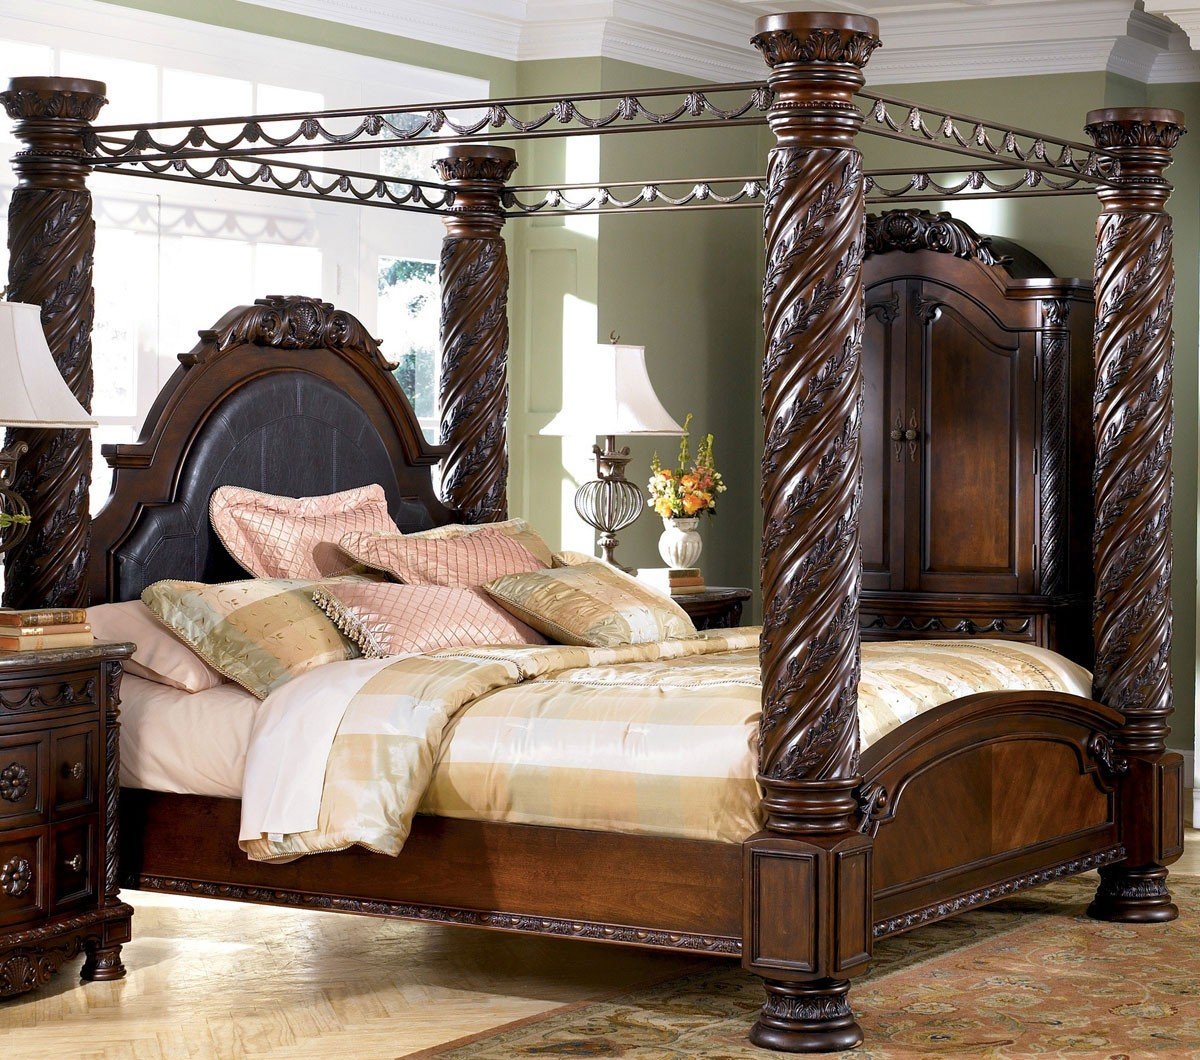 black canopy bed, a good idea to get comfortable bedroom - midcityeast